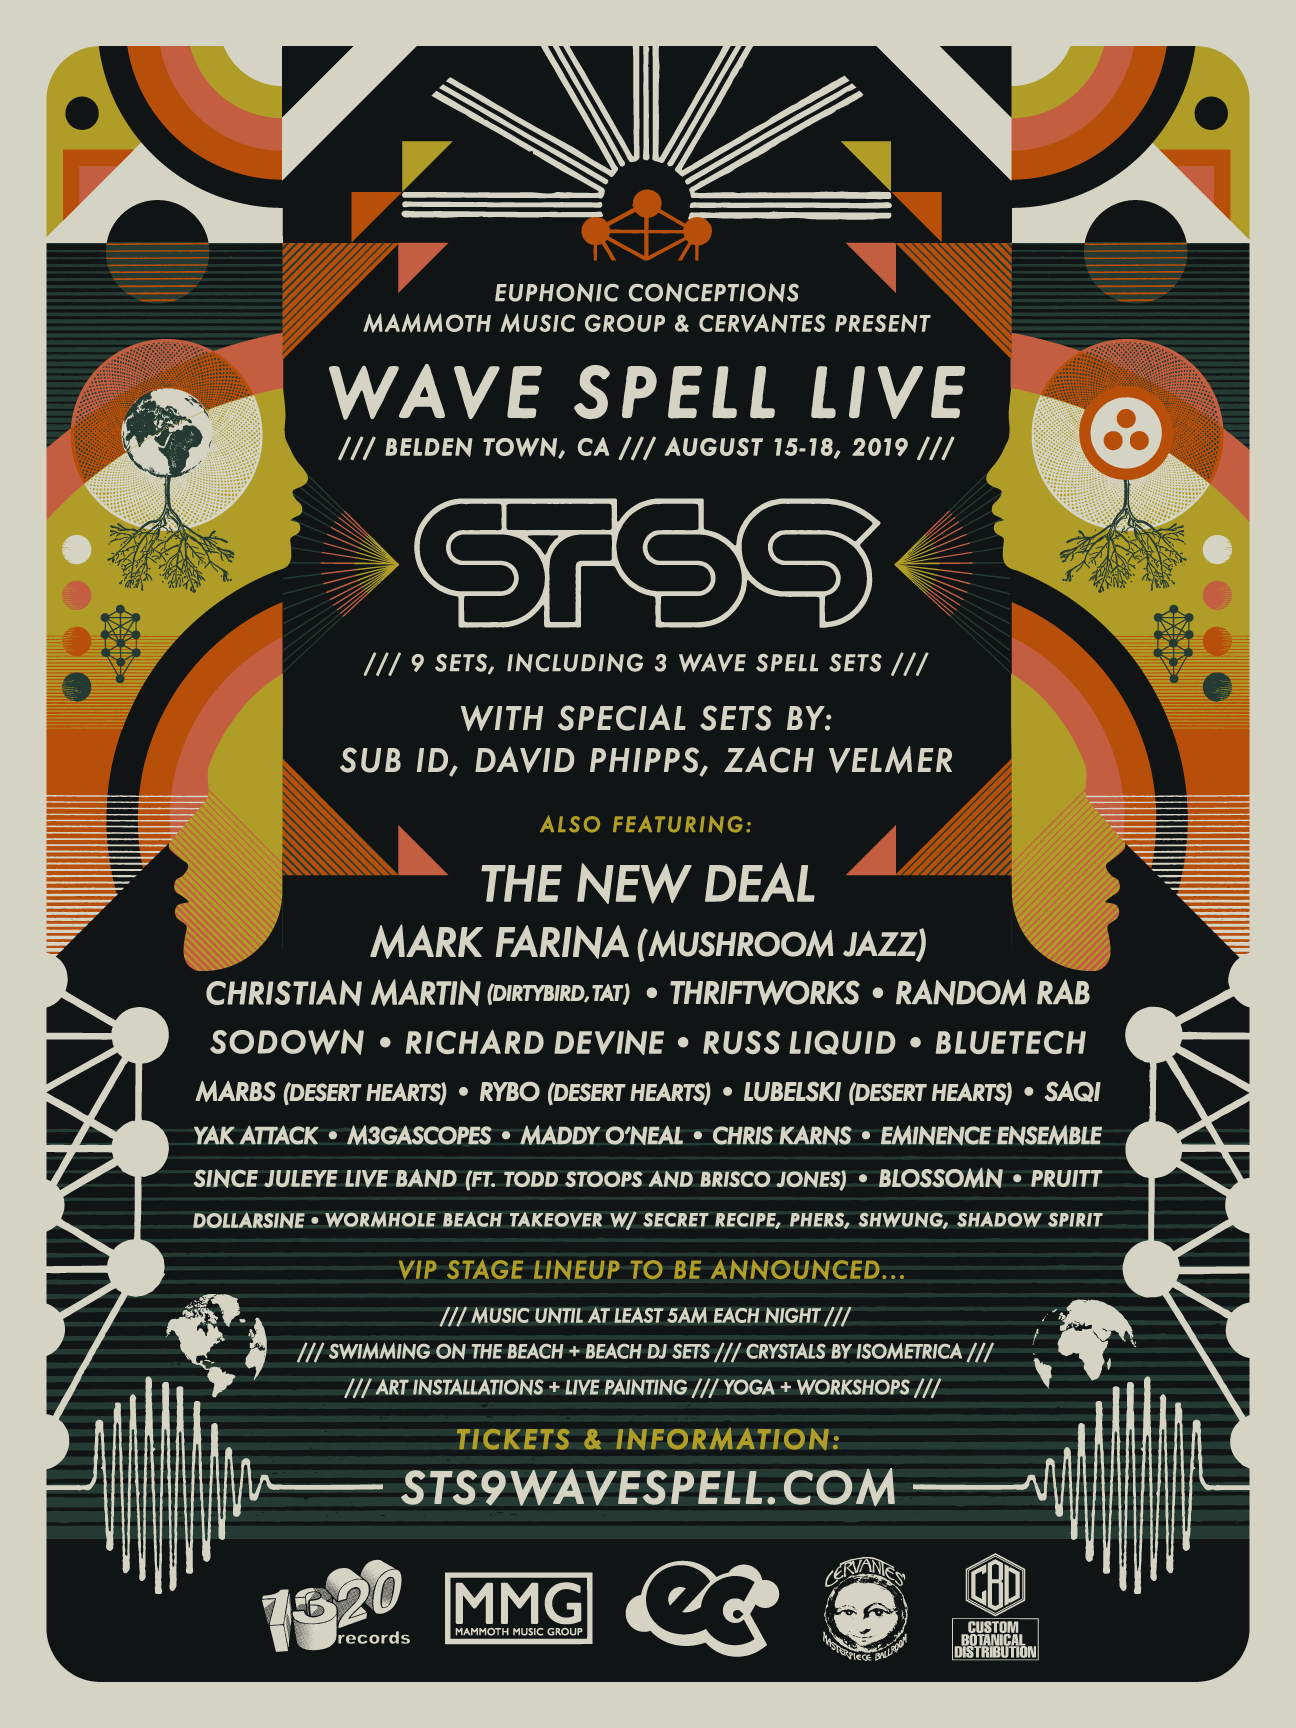 Sound Tribe Sector 9 Announces Wave Spell Live 2019 Lineup | Music